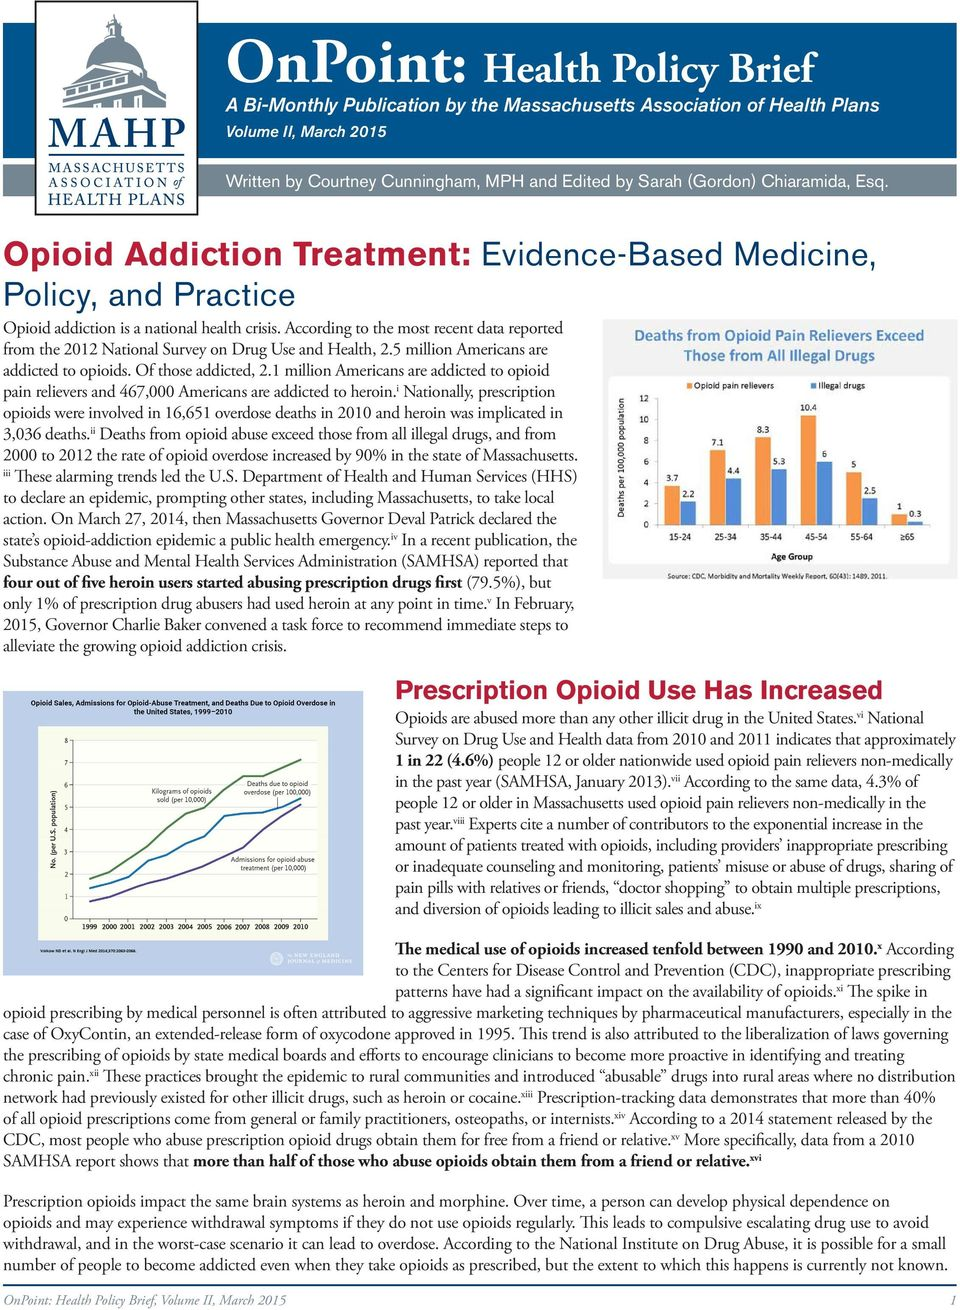 According to the most recent data reported from the 2012 National Survey on Drug Use and Health, 2.5 million Americans are addicted to opioids. Of those addicted, 2.